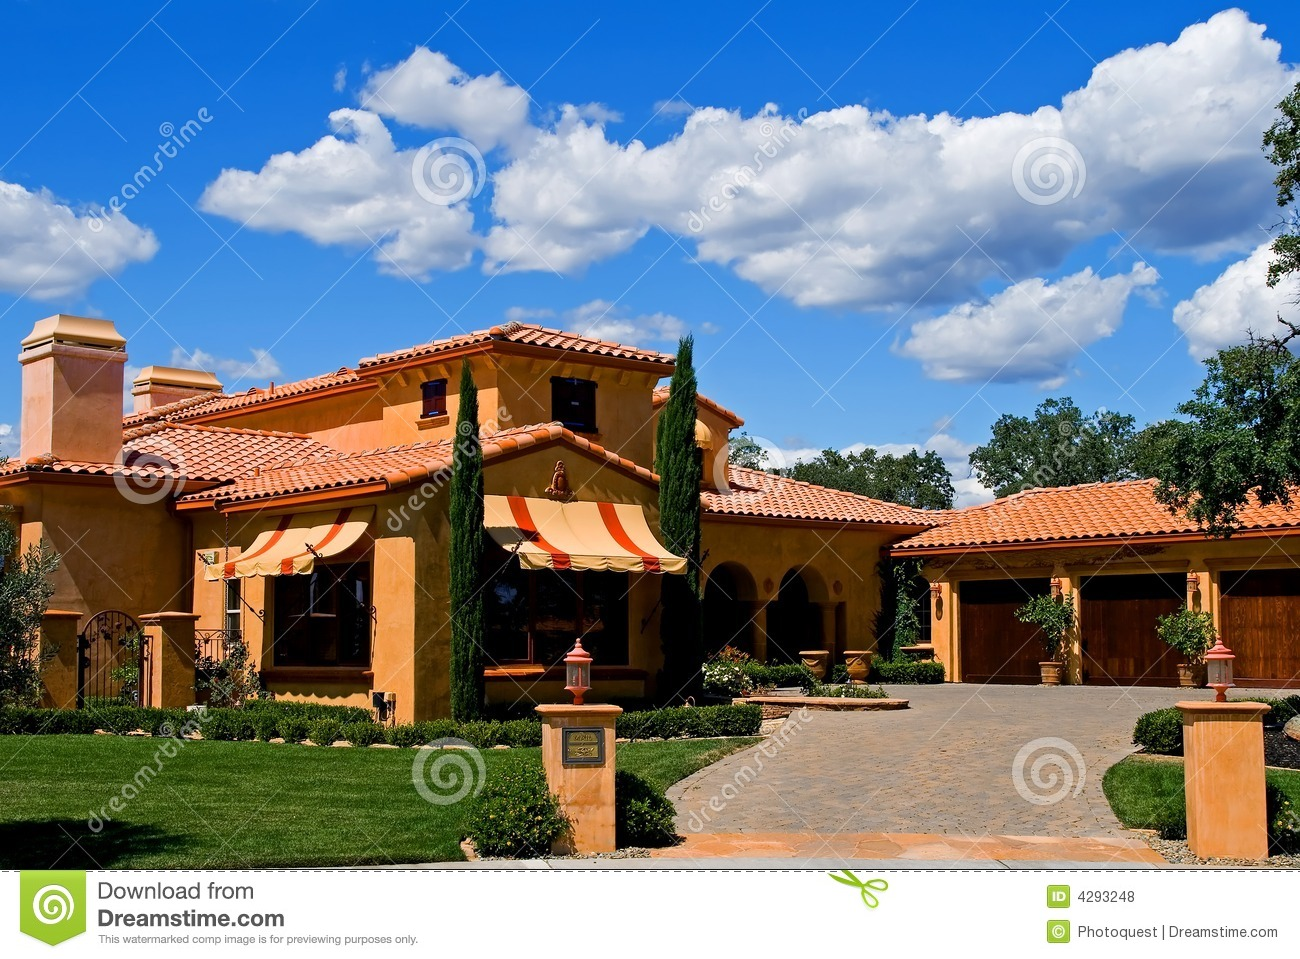 Italian style house royalty free stock photos image 4293248 for Italian house